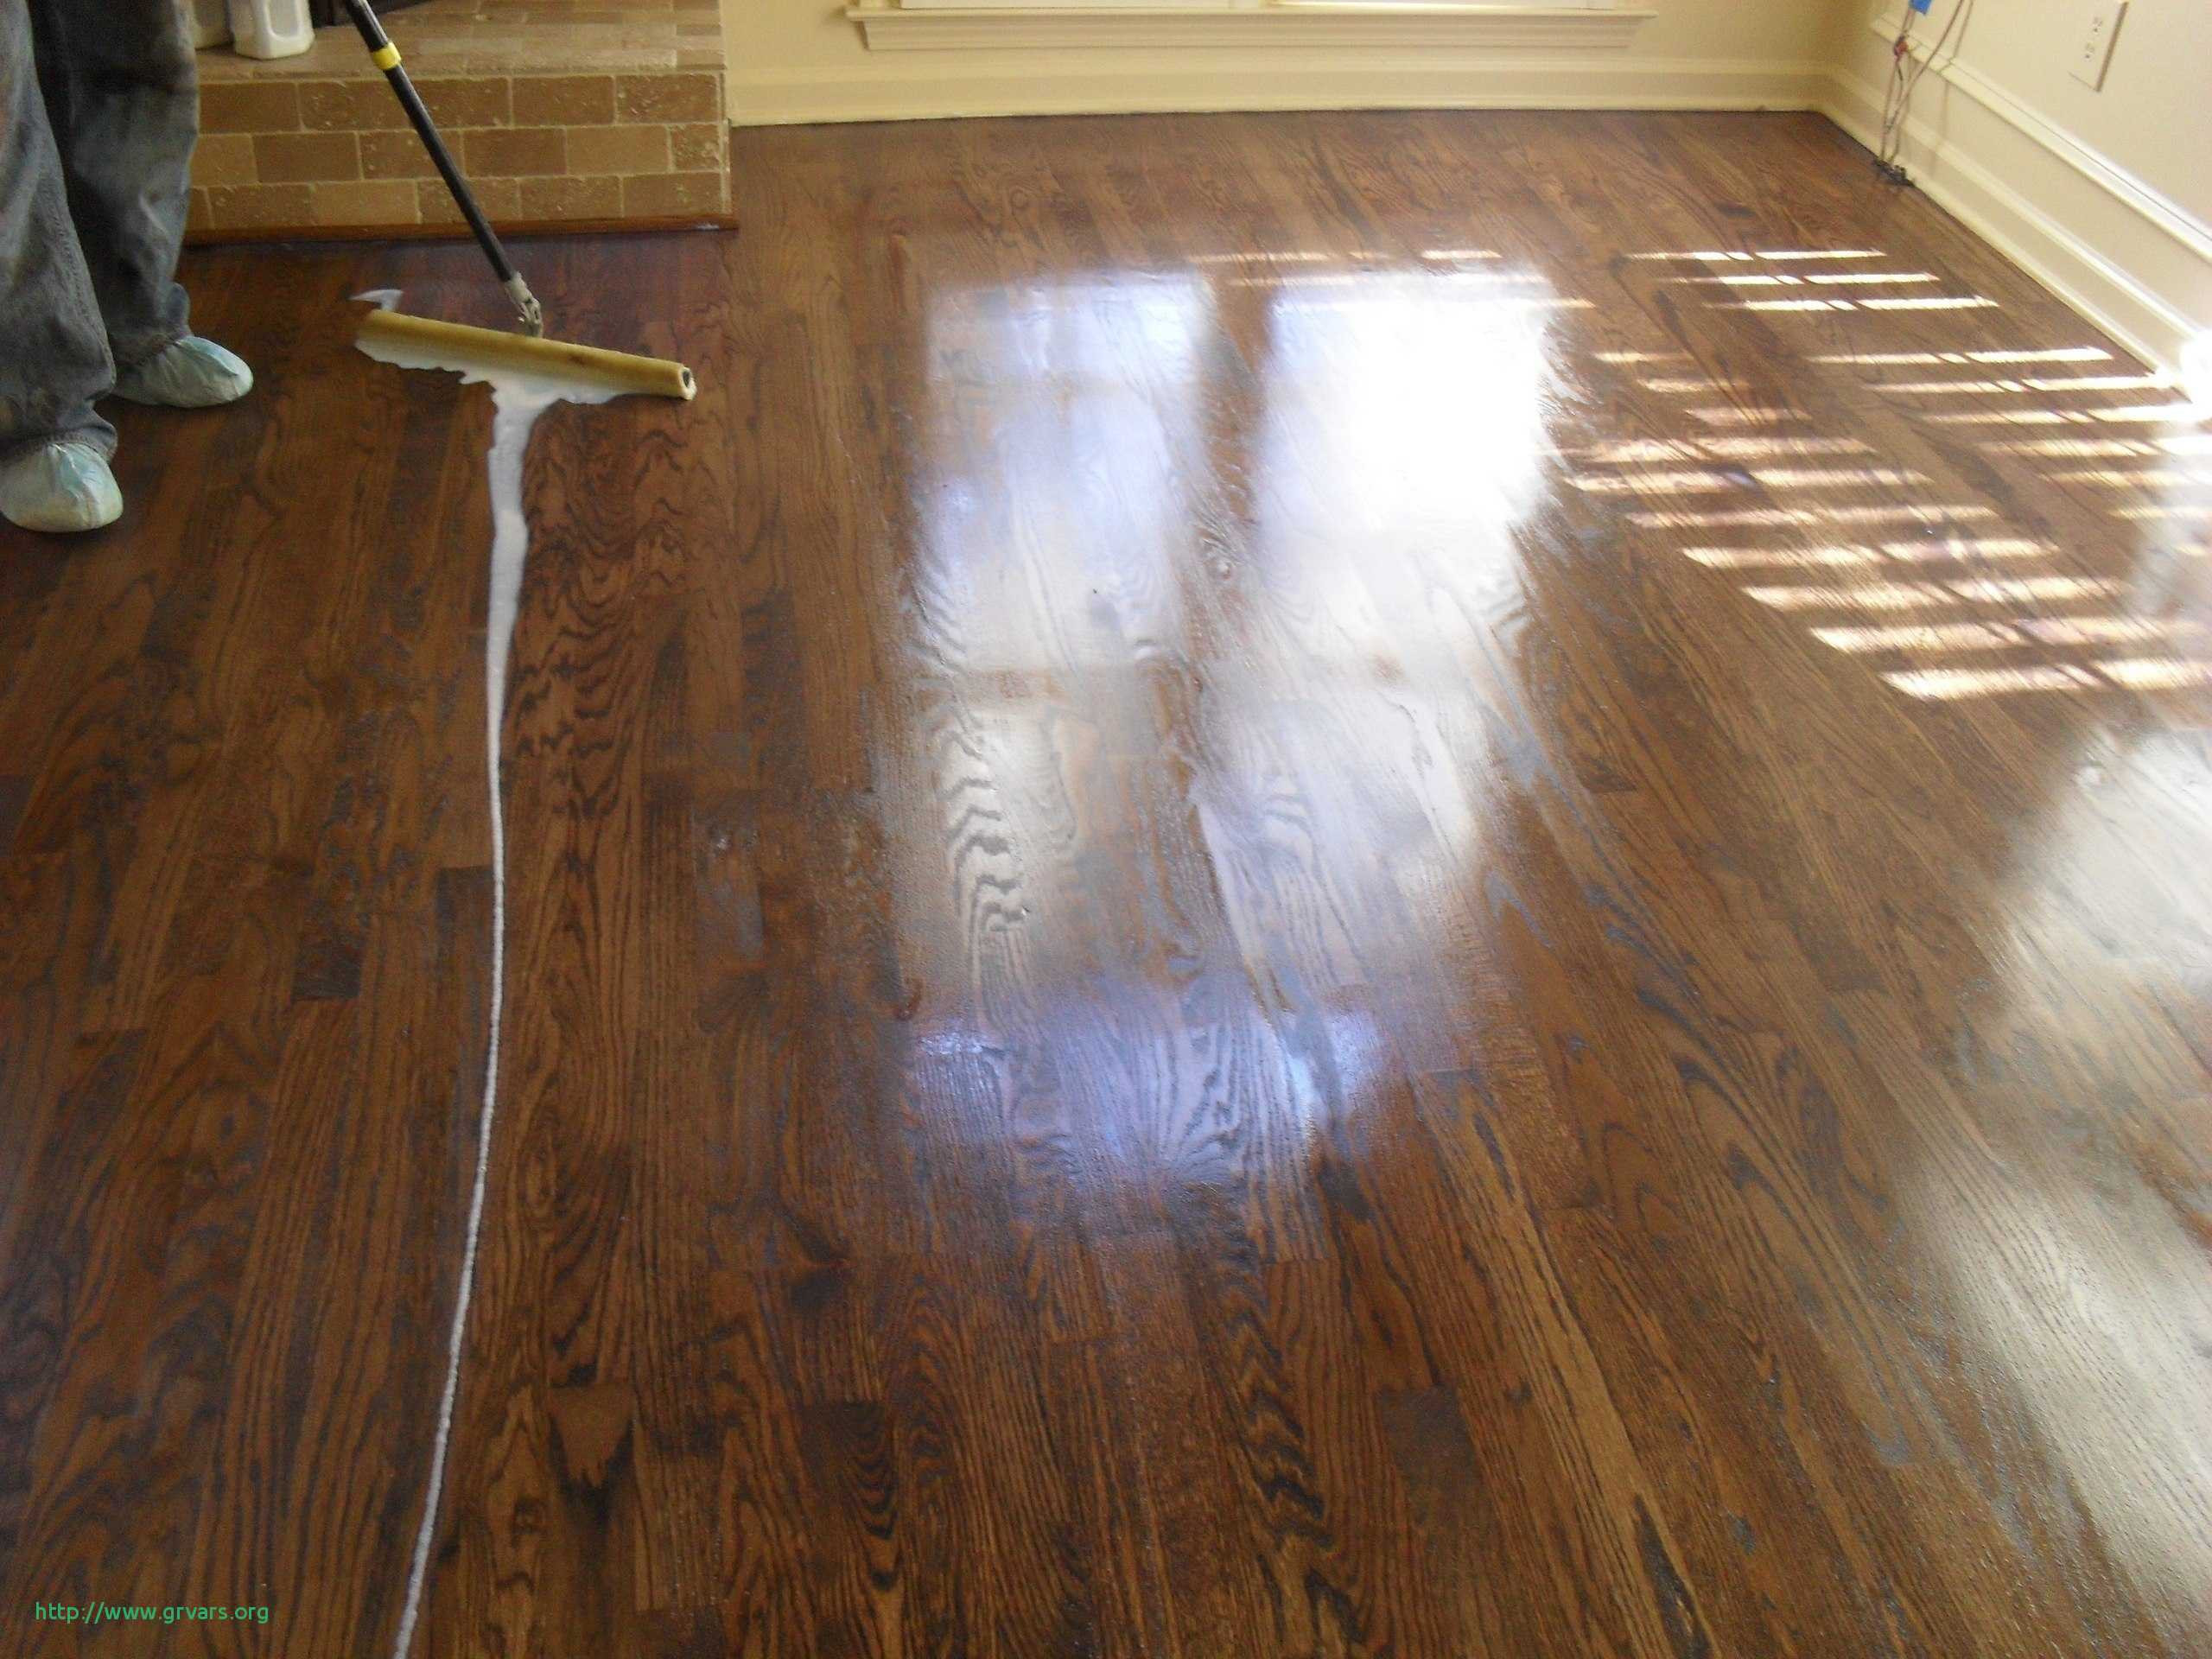 Hardwood Floor Refinishing Cleveland Of How to Sand and Refinish A Hardwood Floor A‰lagant Sanding and Throughout How to Sand and Refinish A Hardwood Floor A‰lagant Sanding and Refinishing Hardwood Floors Podemosleganes